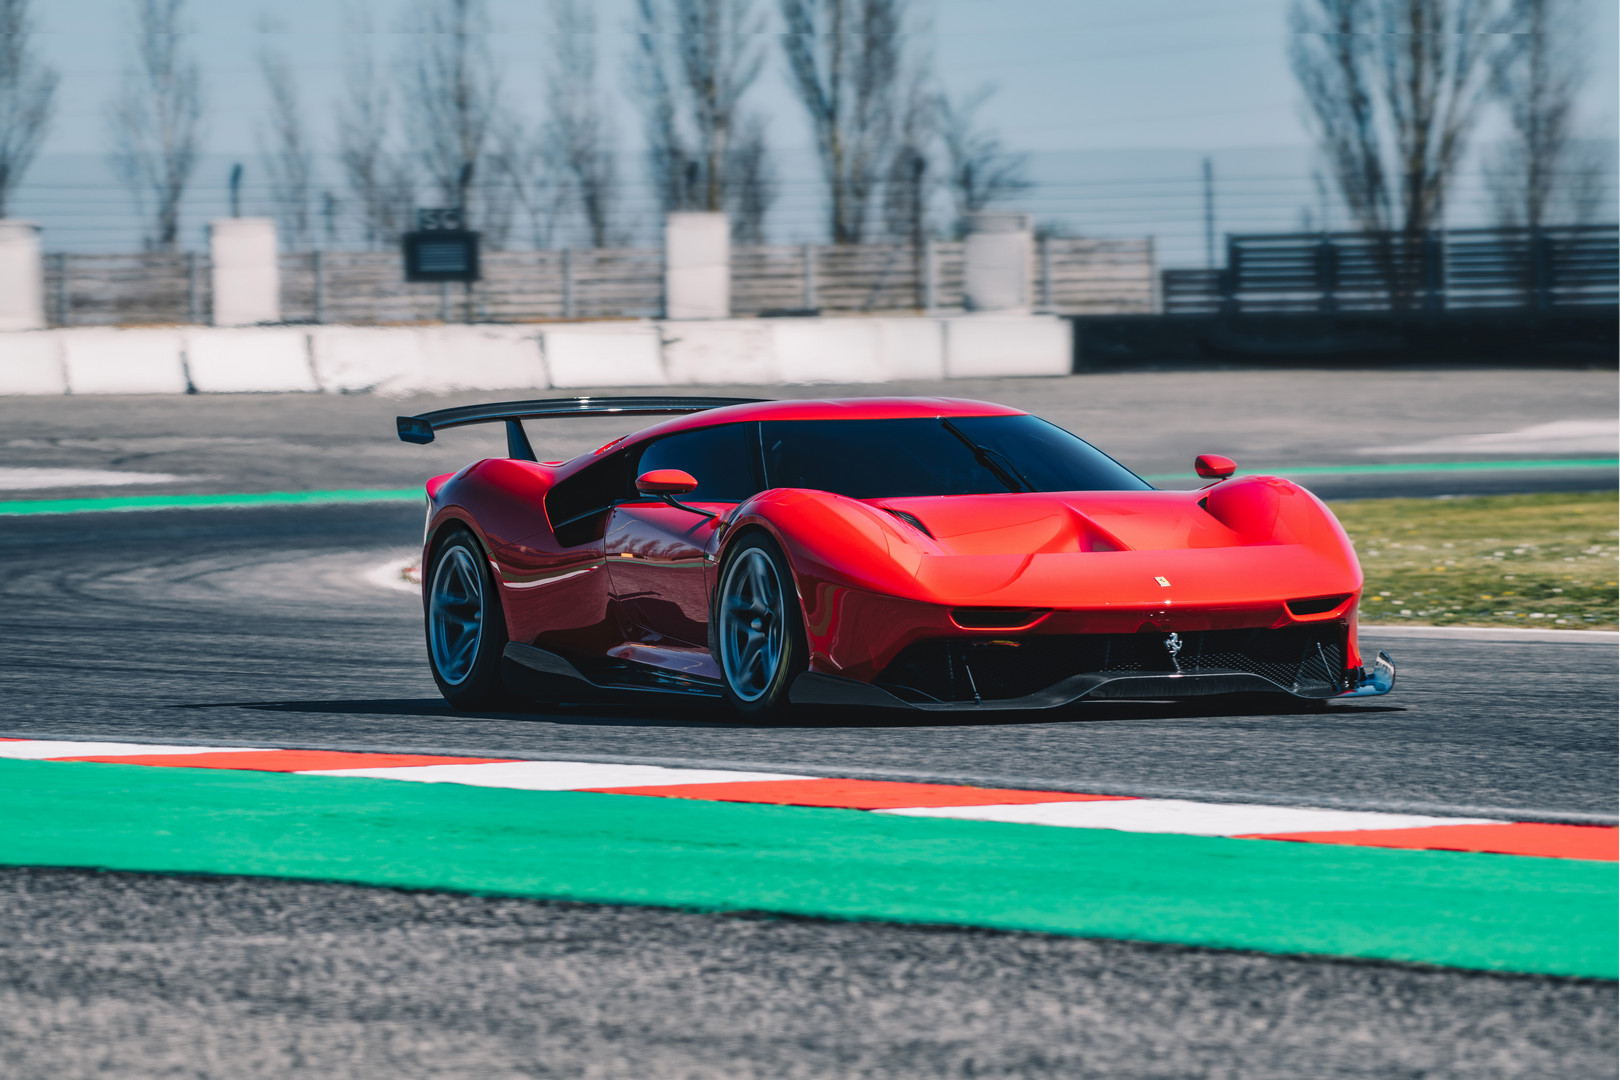 Ferrari P80/C: One-Off Racecar